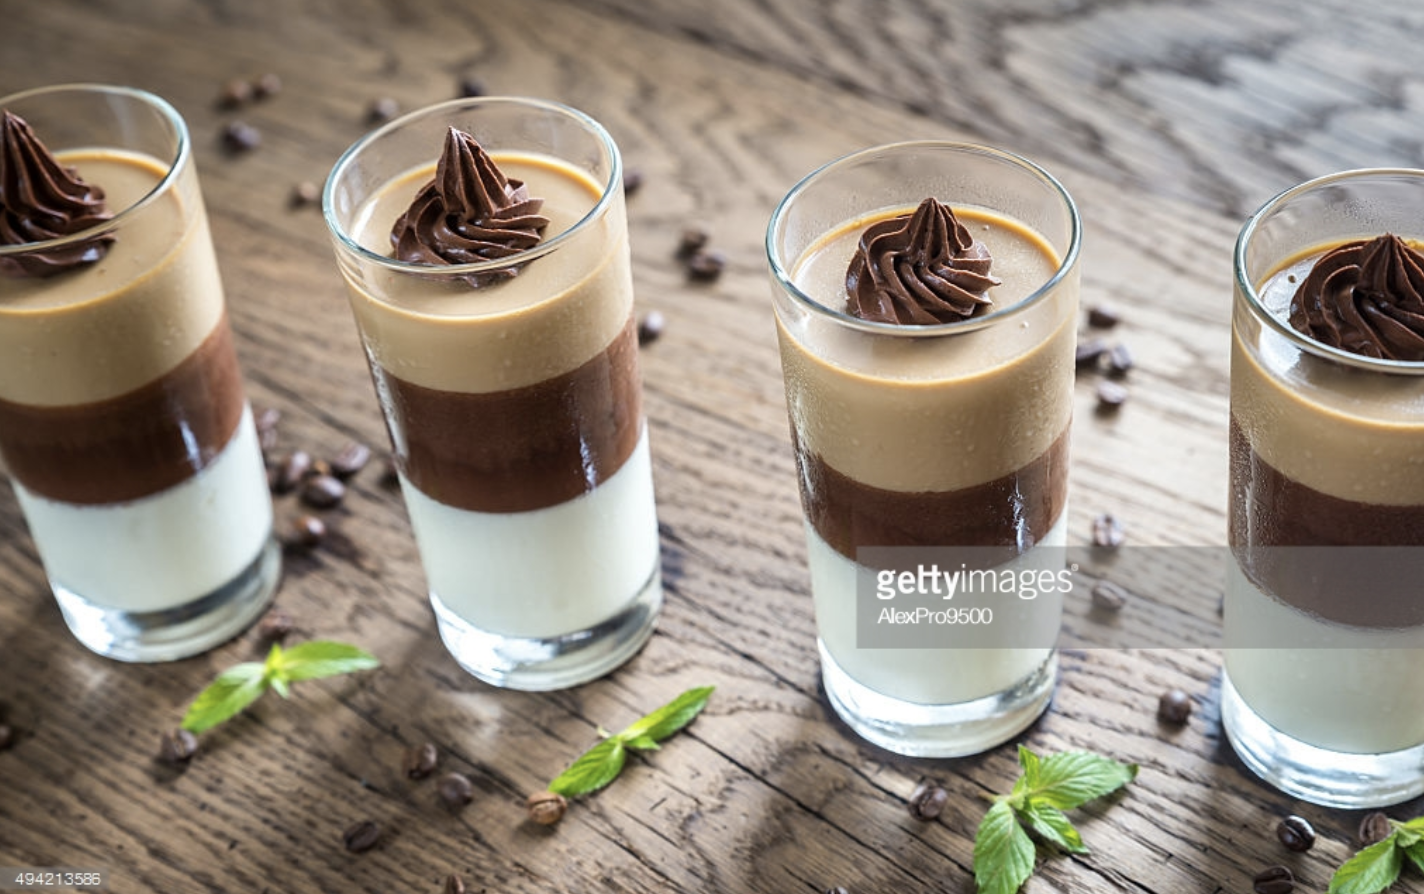 25 Dessert Shooters For Your Next Party - Shari's Berries Blog